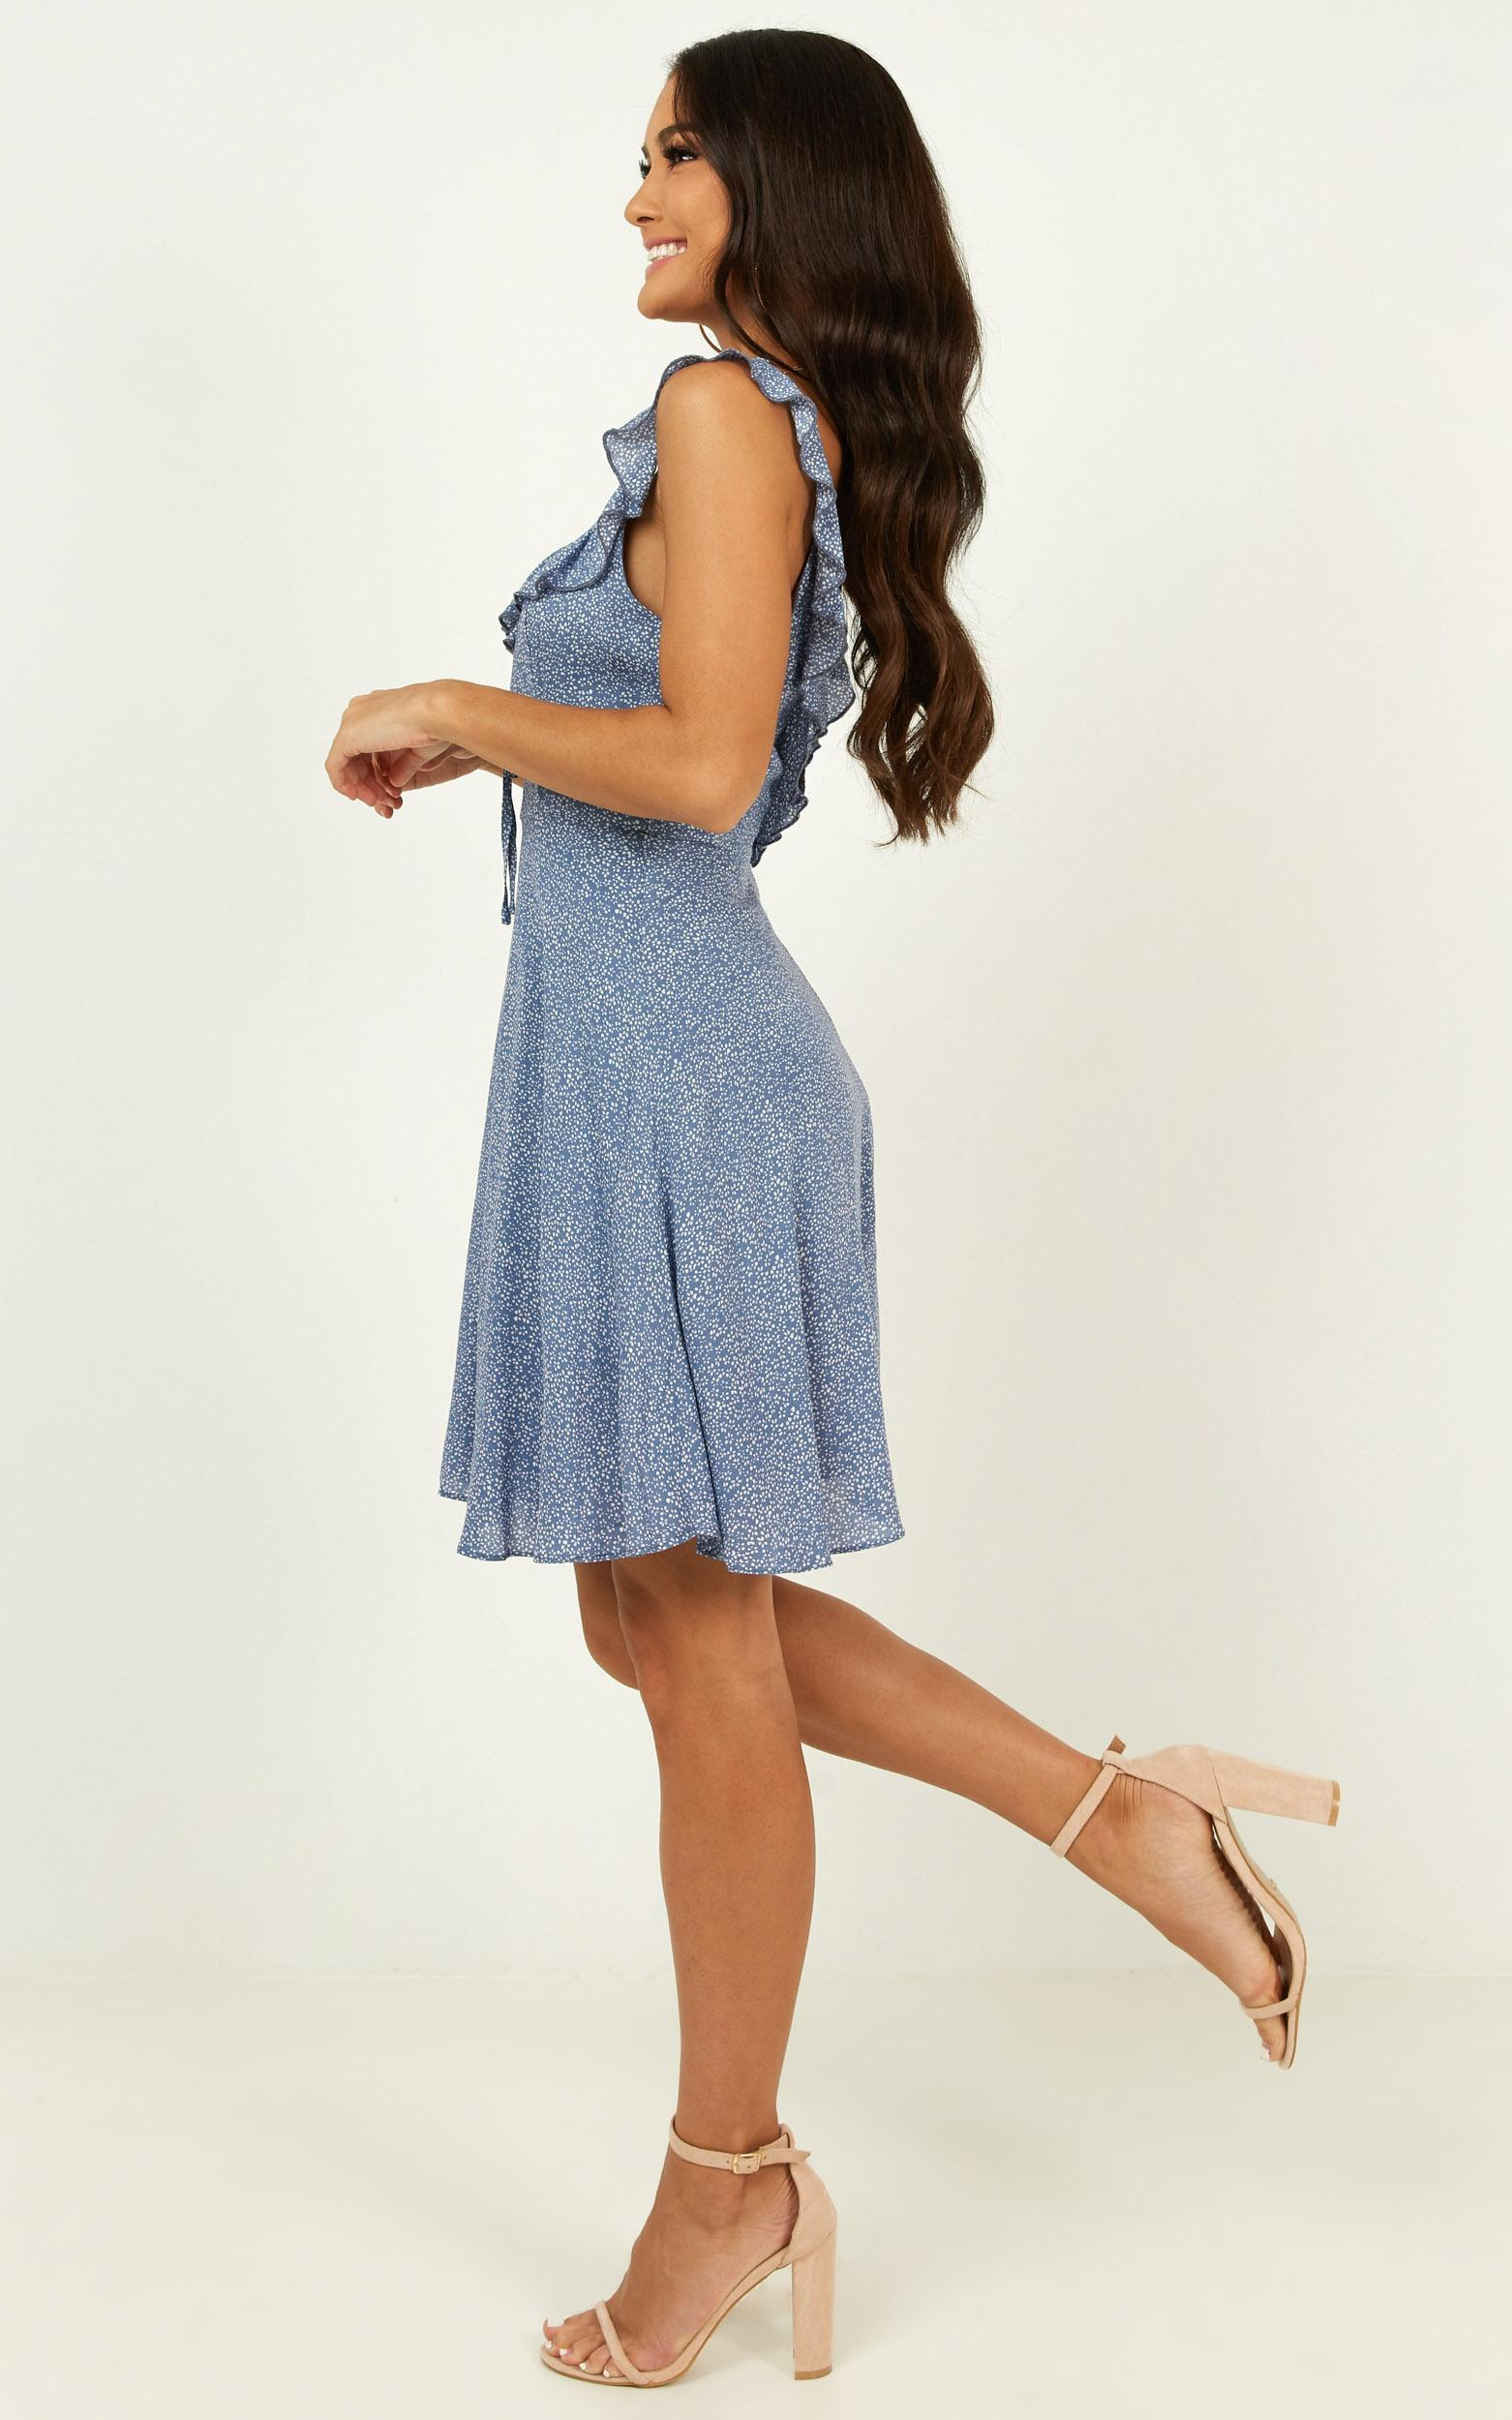 Not My Issue Dress in blue floral - 20 (XXXXL), Blue, hi-res image number null